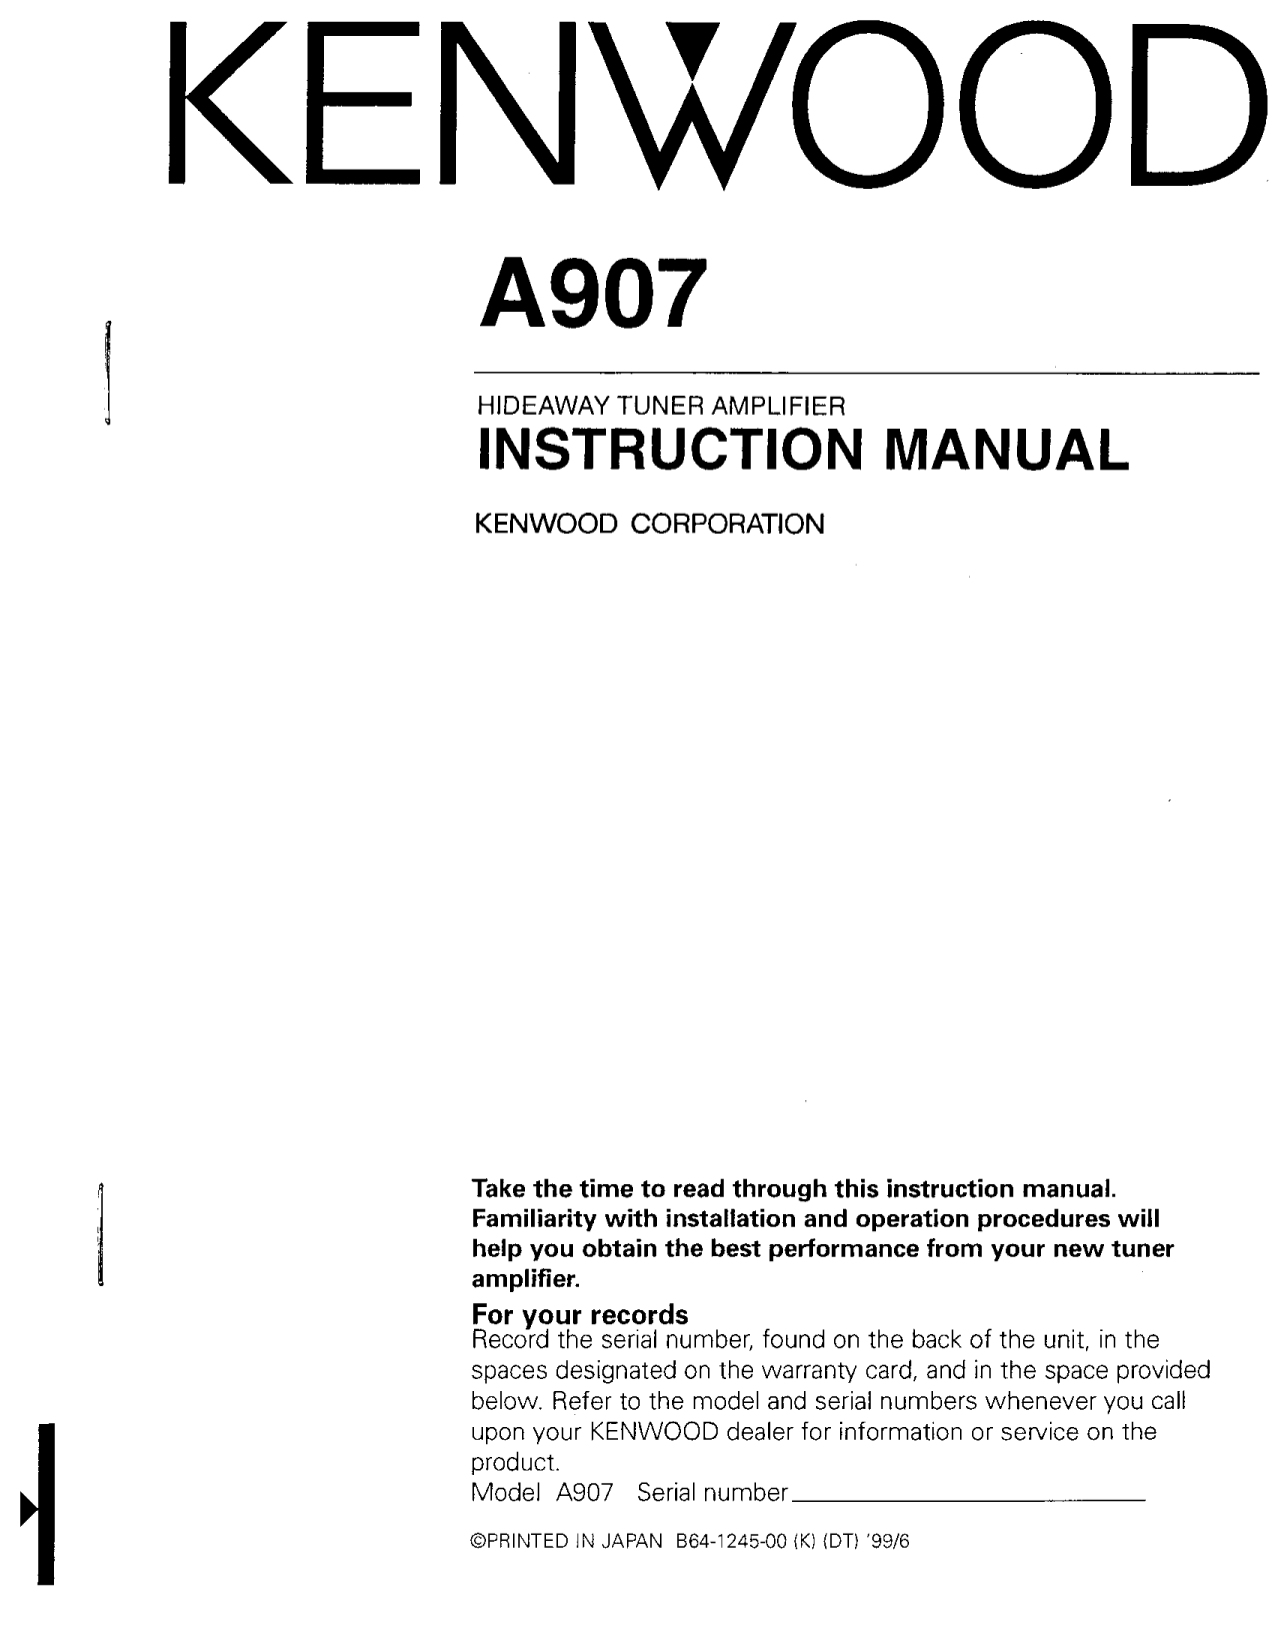 pdf for Kenwood Amp A907 manual